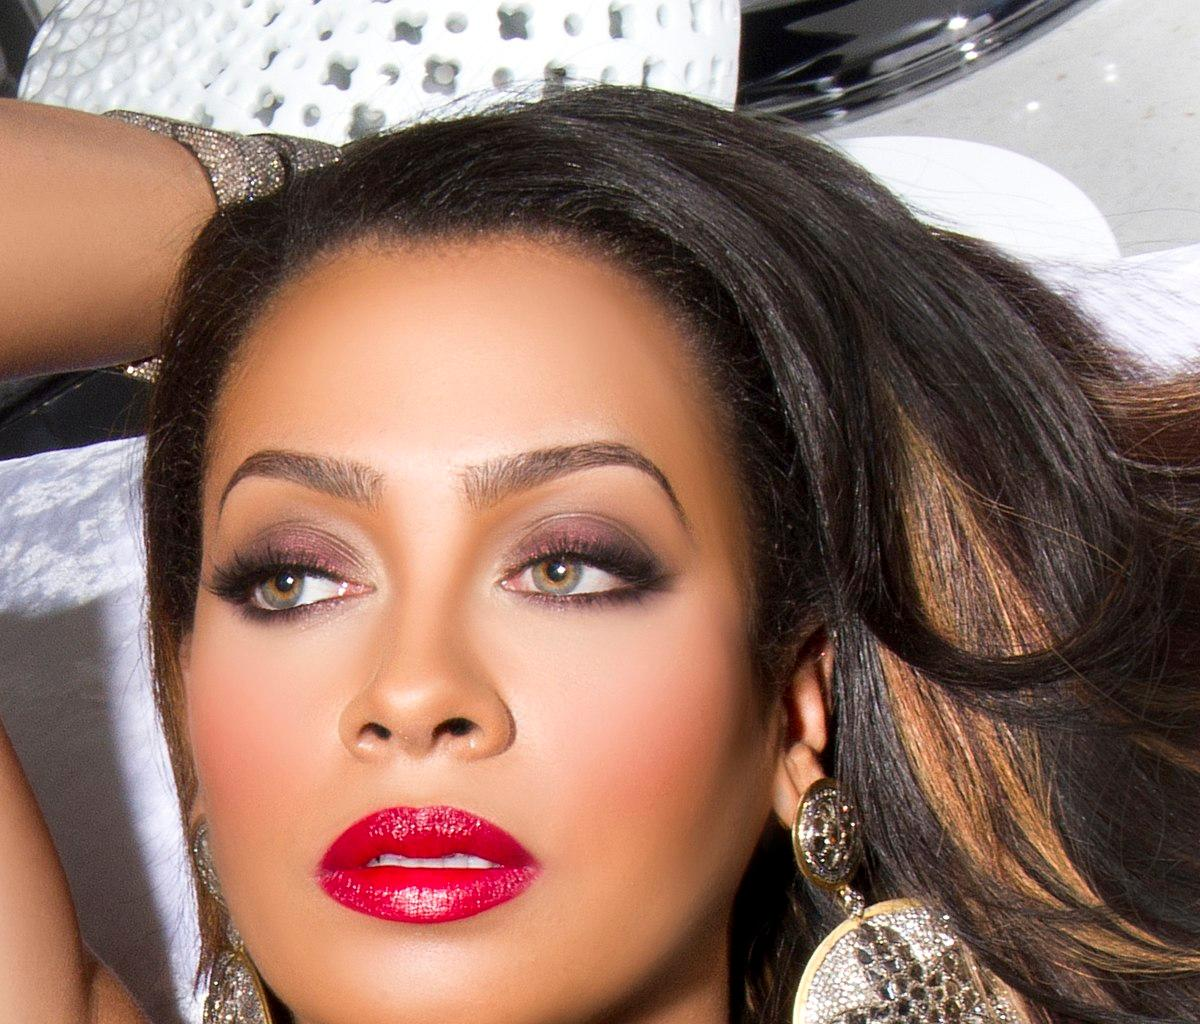 LaLa Anthony Spoke About Her Divorce From Carmelo Anthony For The First Time In Public